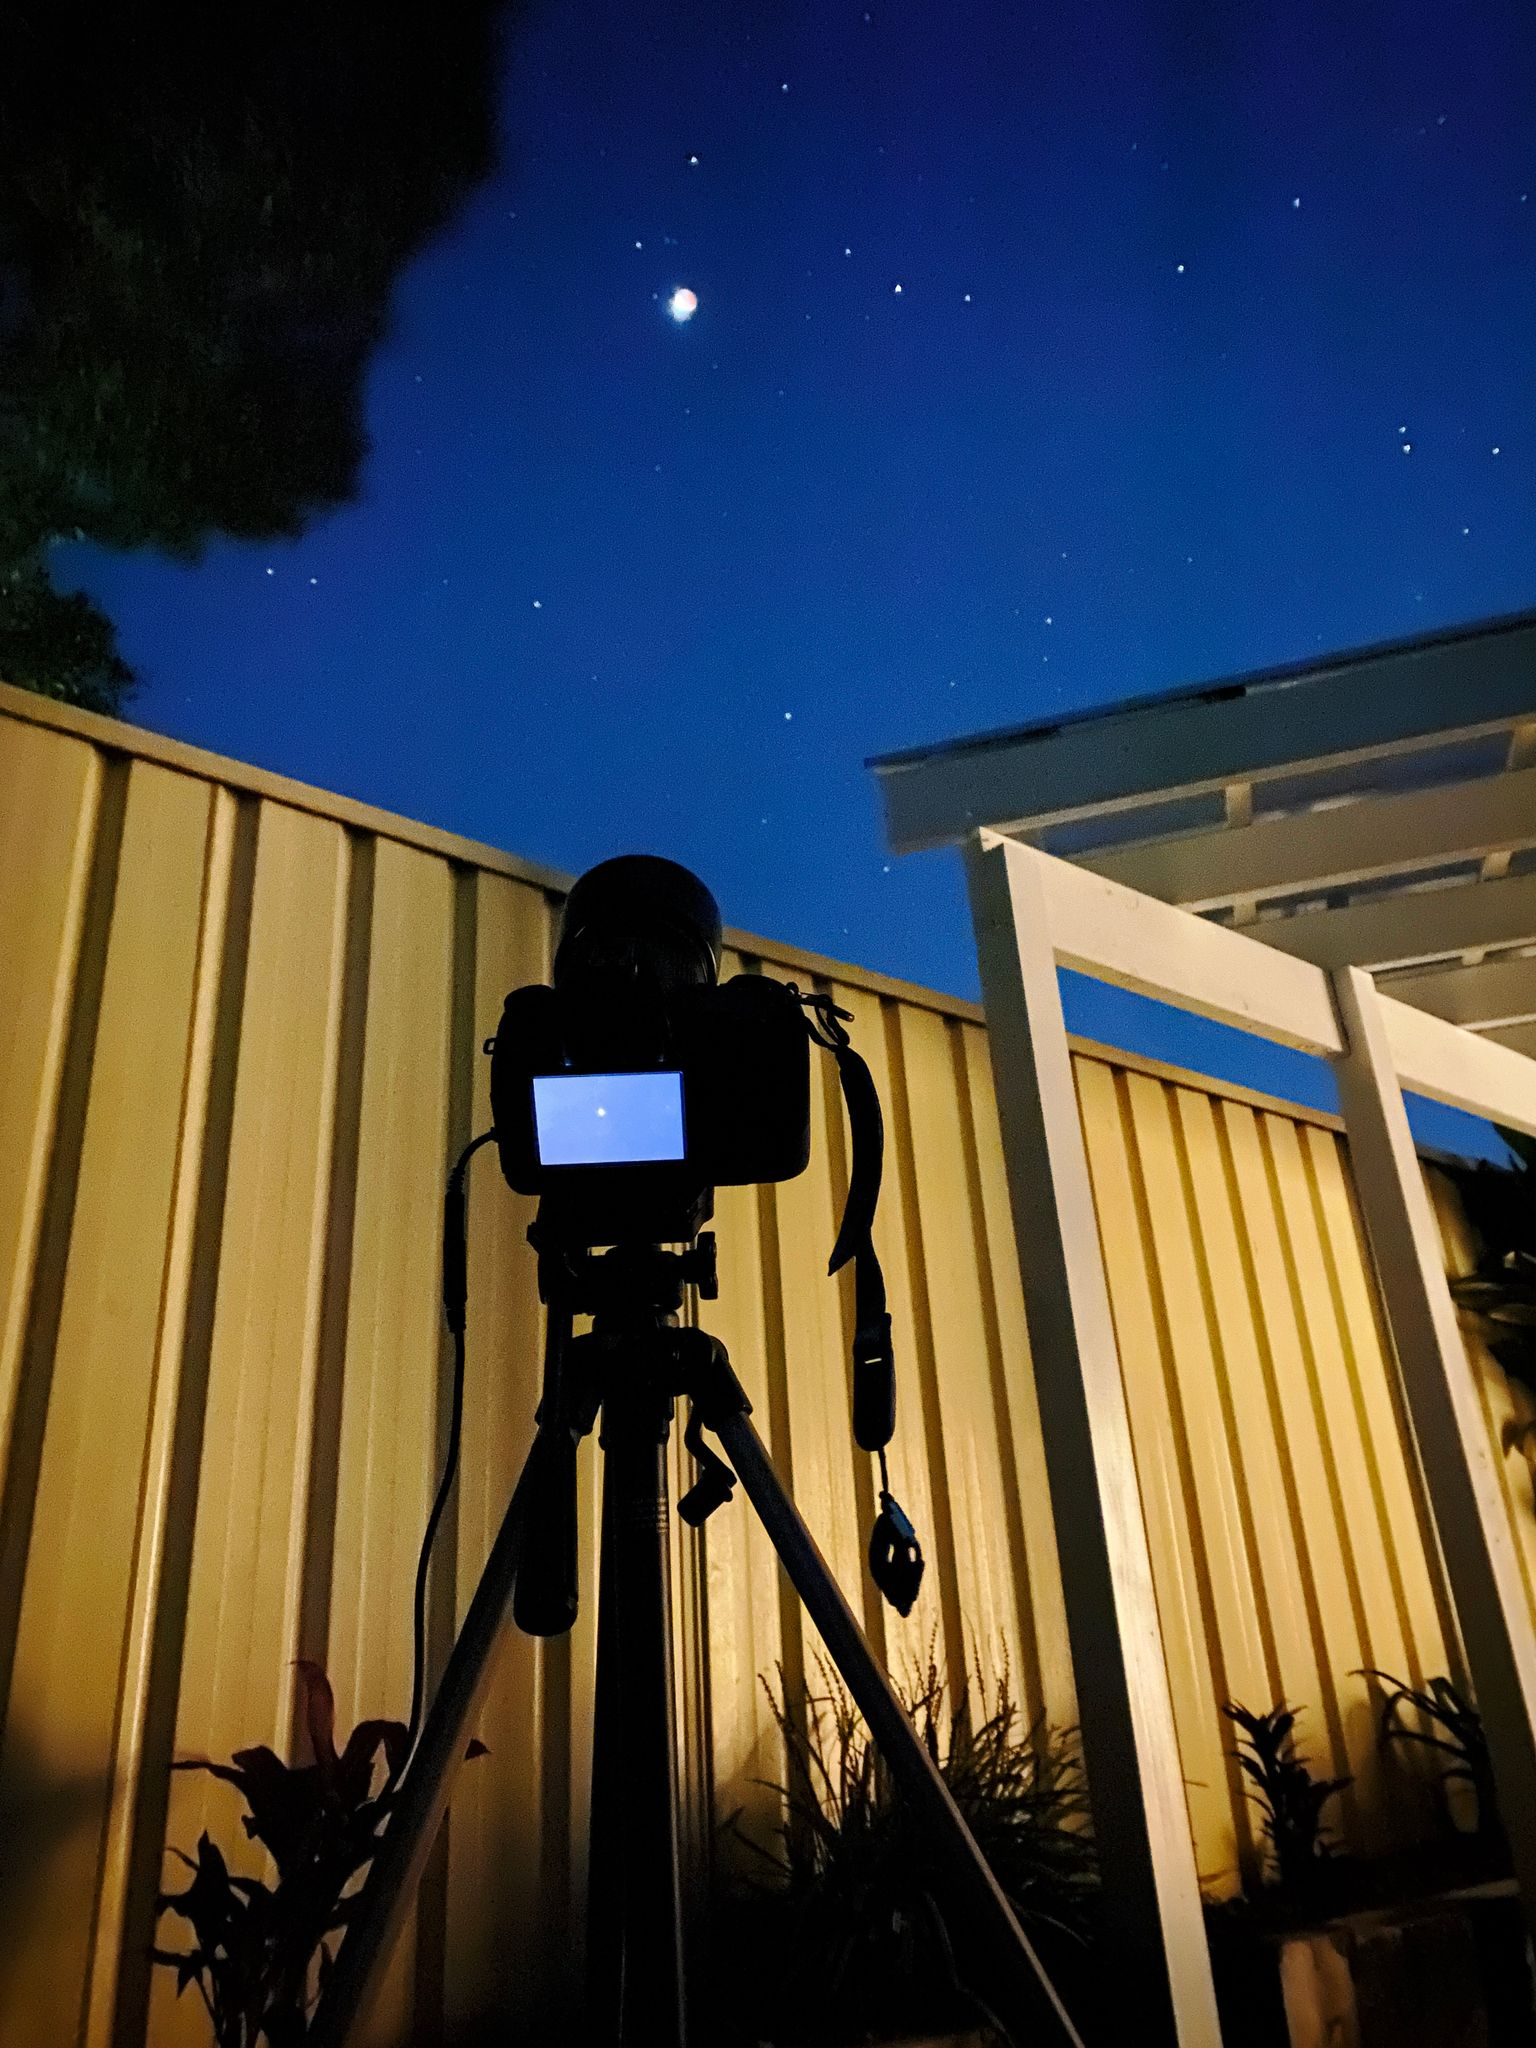 A photo of a DSLR on a tripod looking up at the moon.